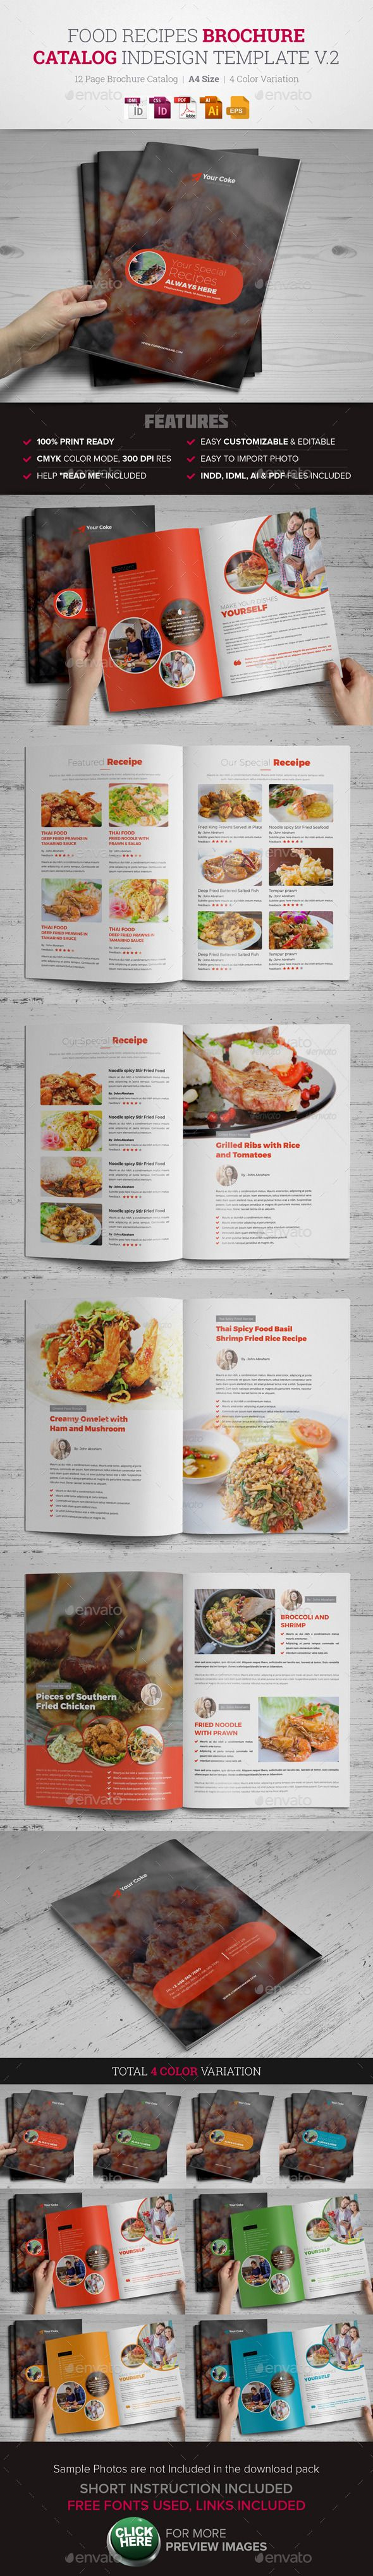 12 best phone and tech images on pinterest computers computer food recipes brochure catalog design v2 forumfinder Choice Image